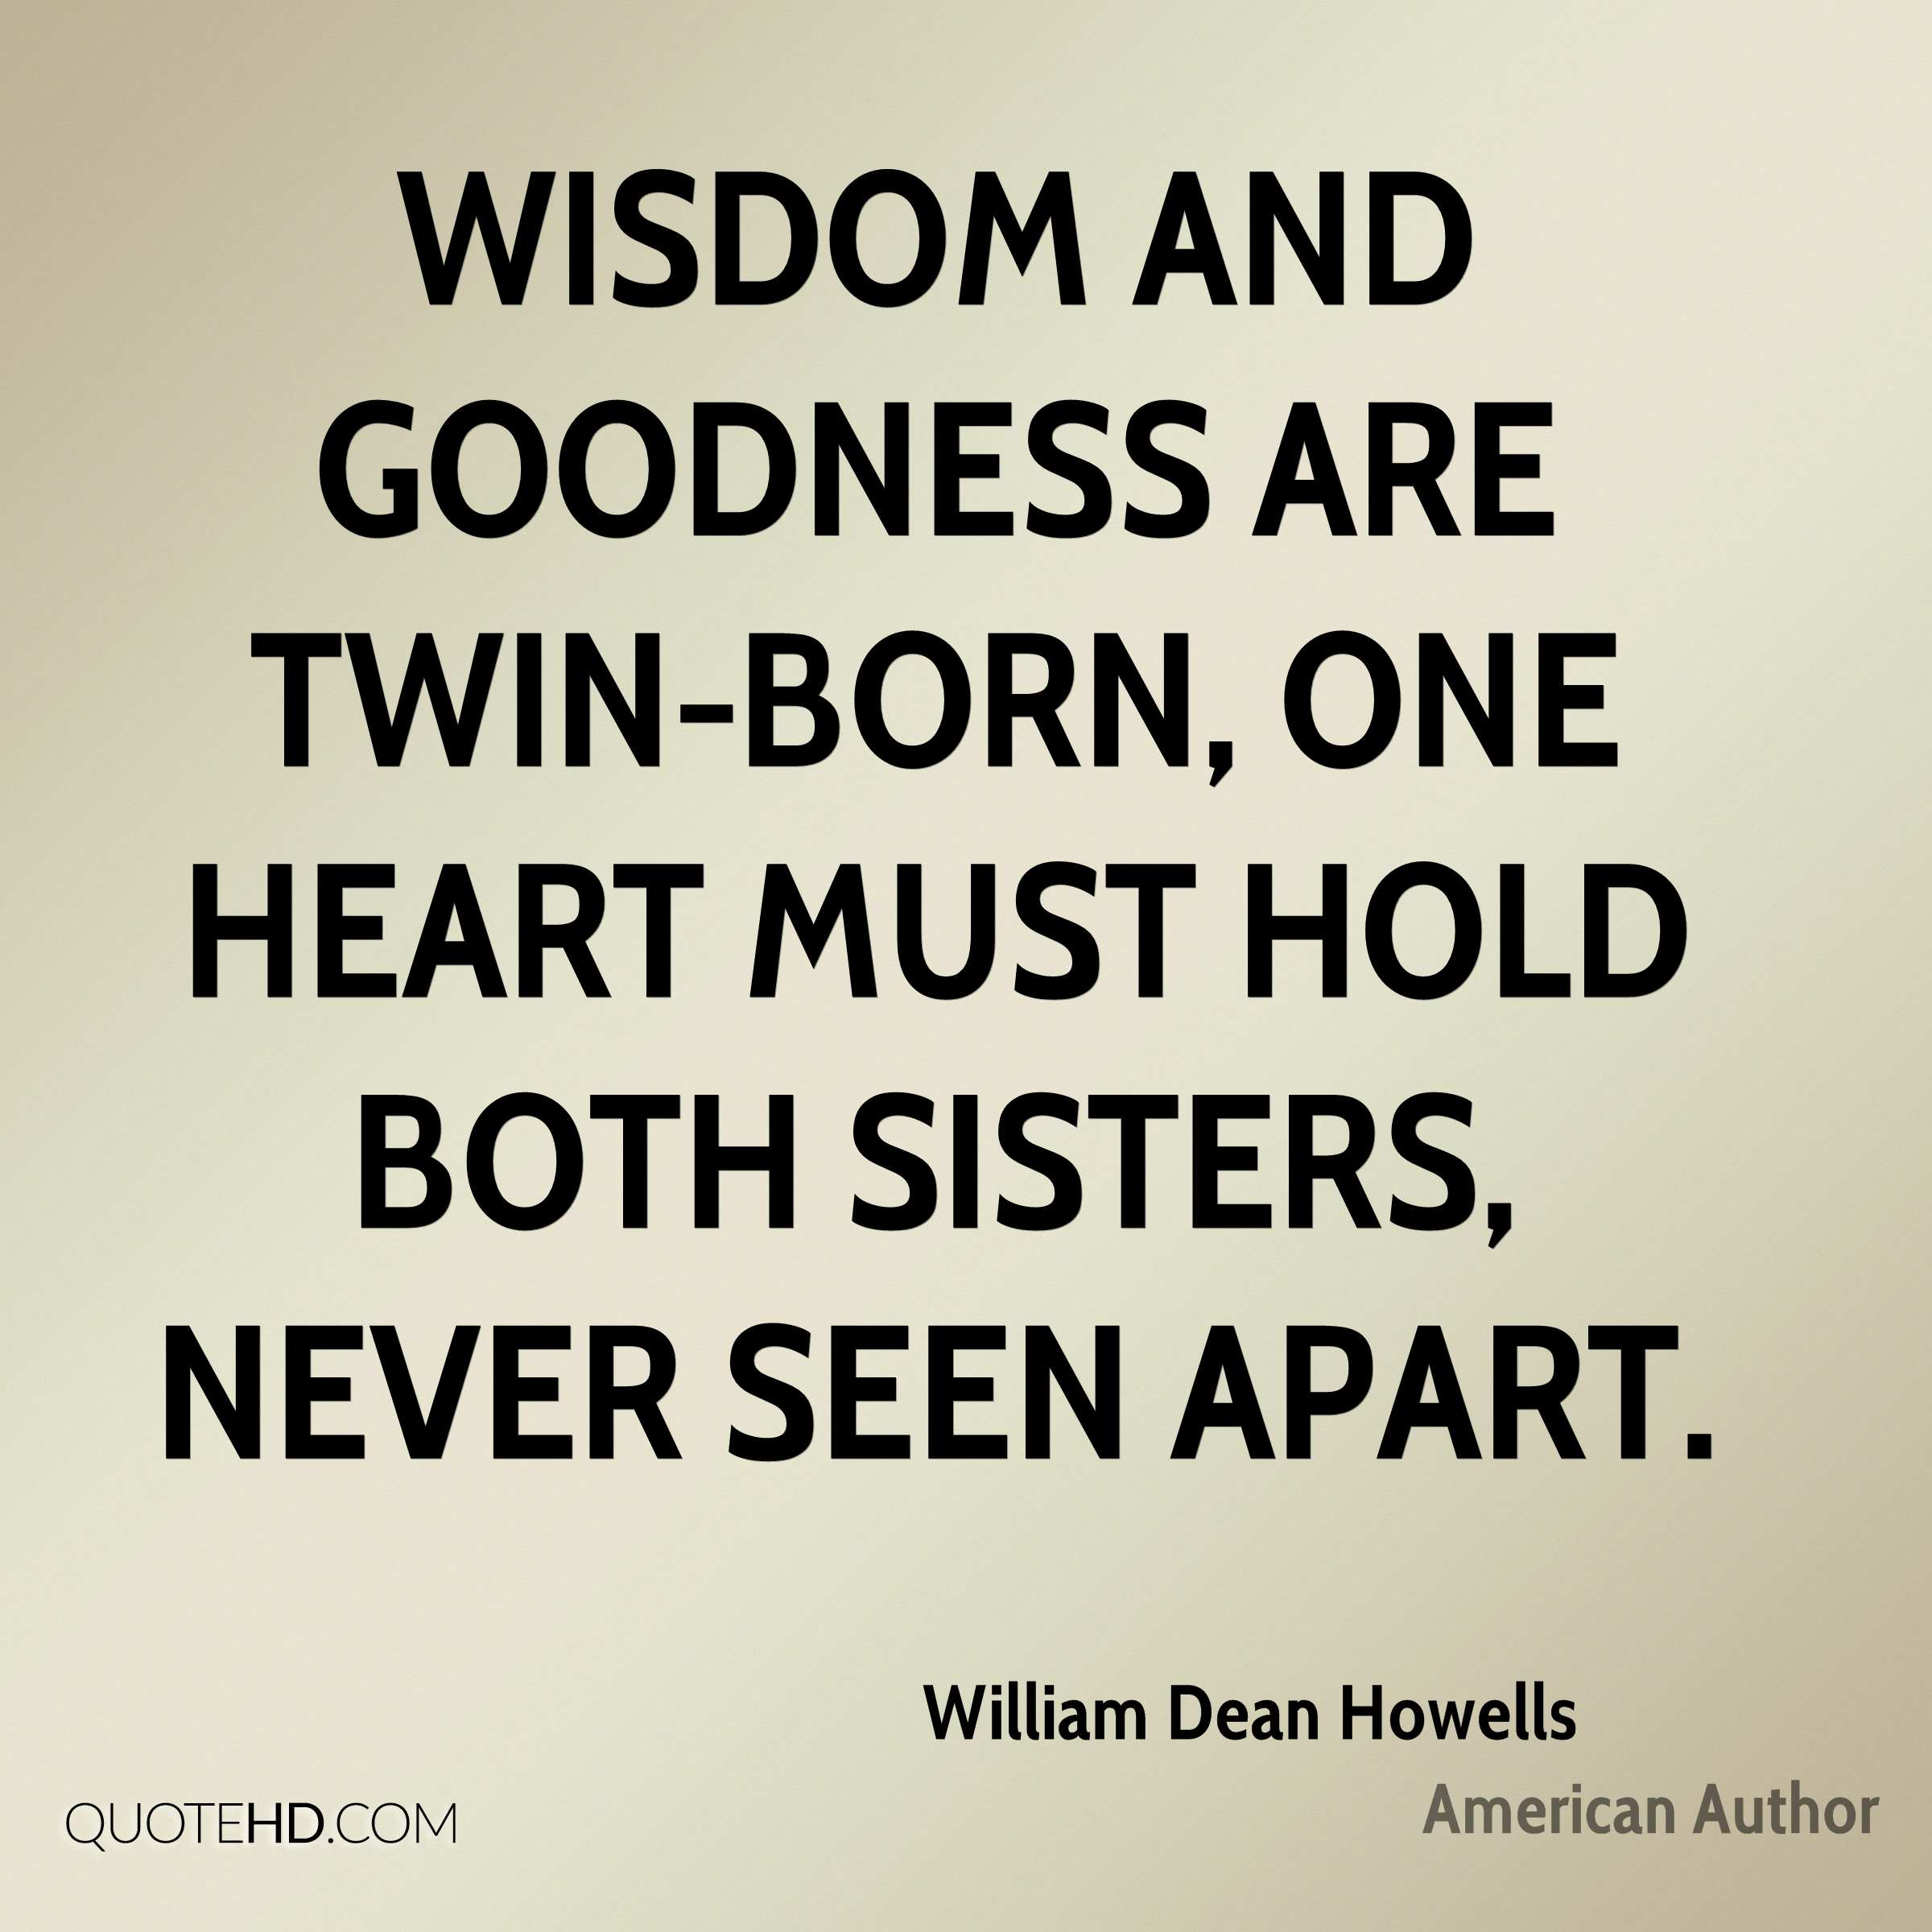 Wisdom and goodness are twin-born, one heart must hold both sisters, never seen apart.